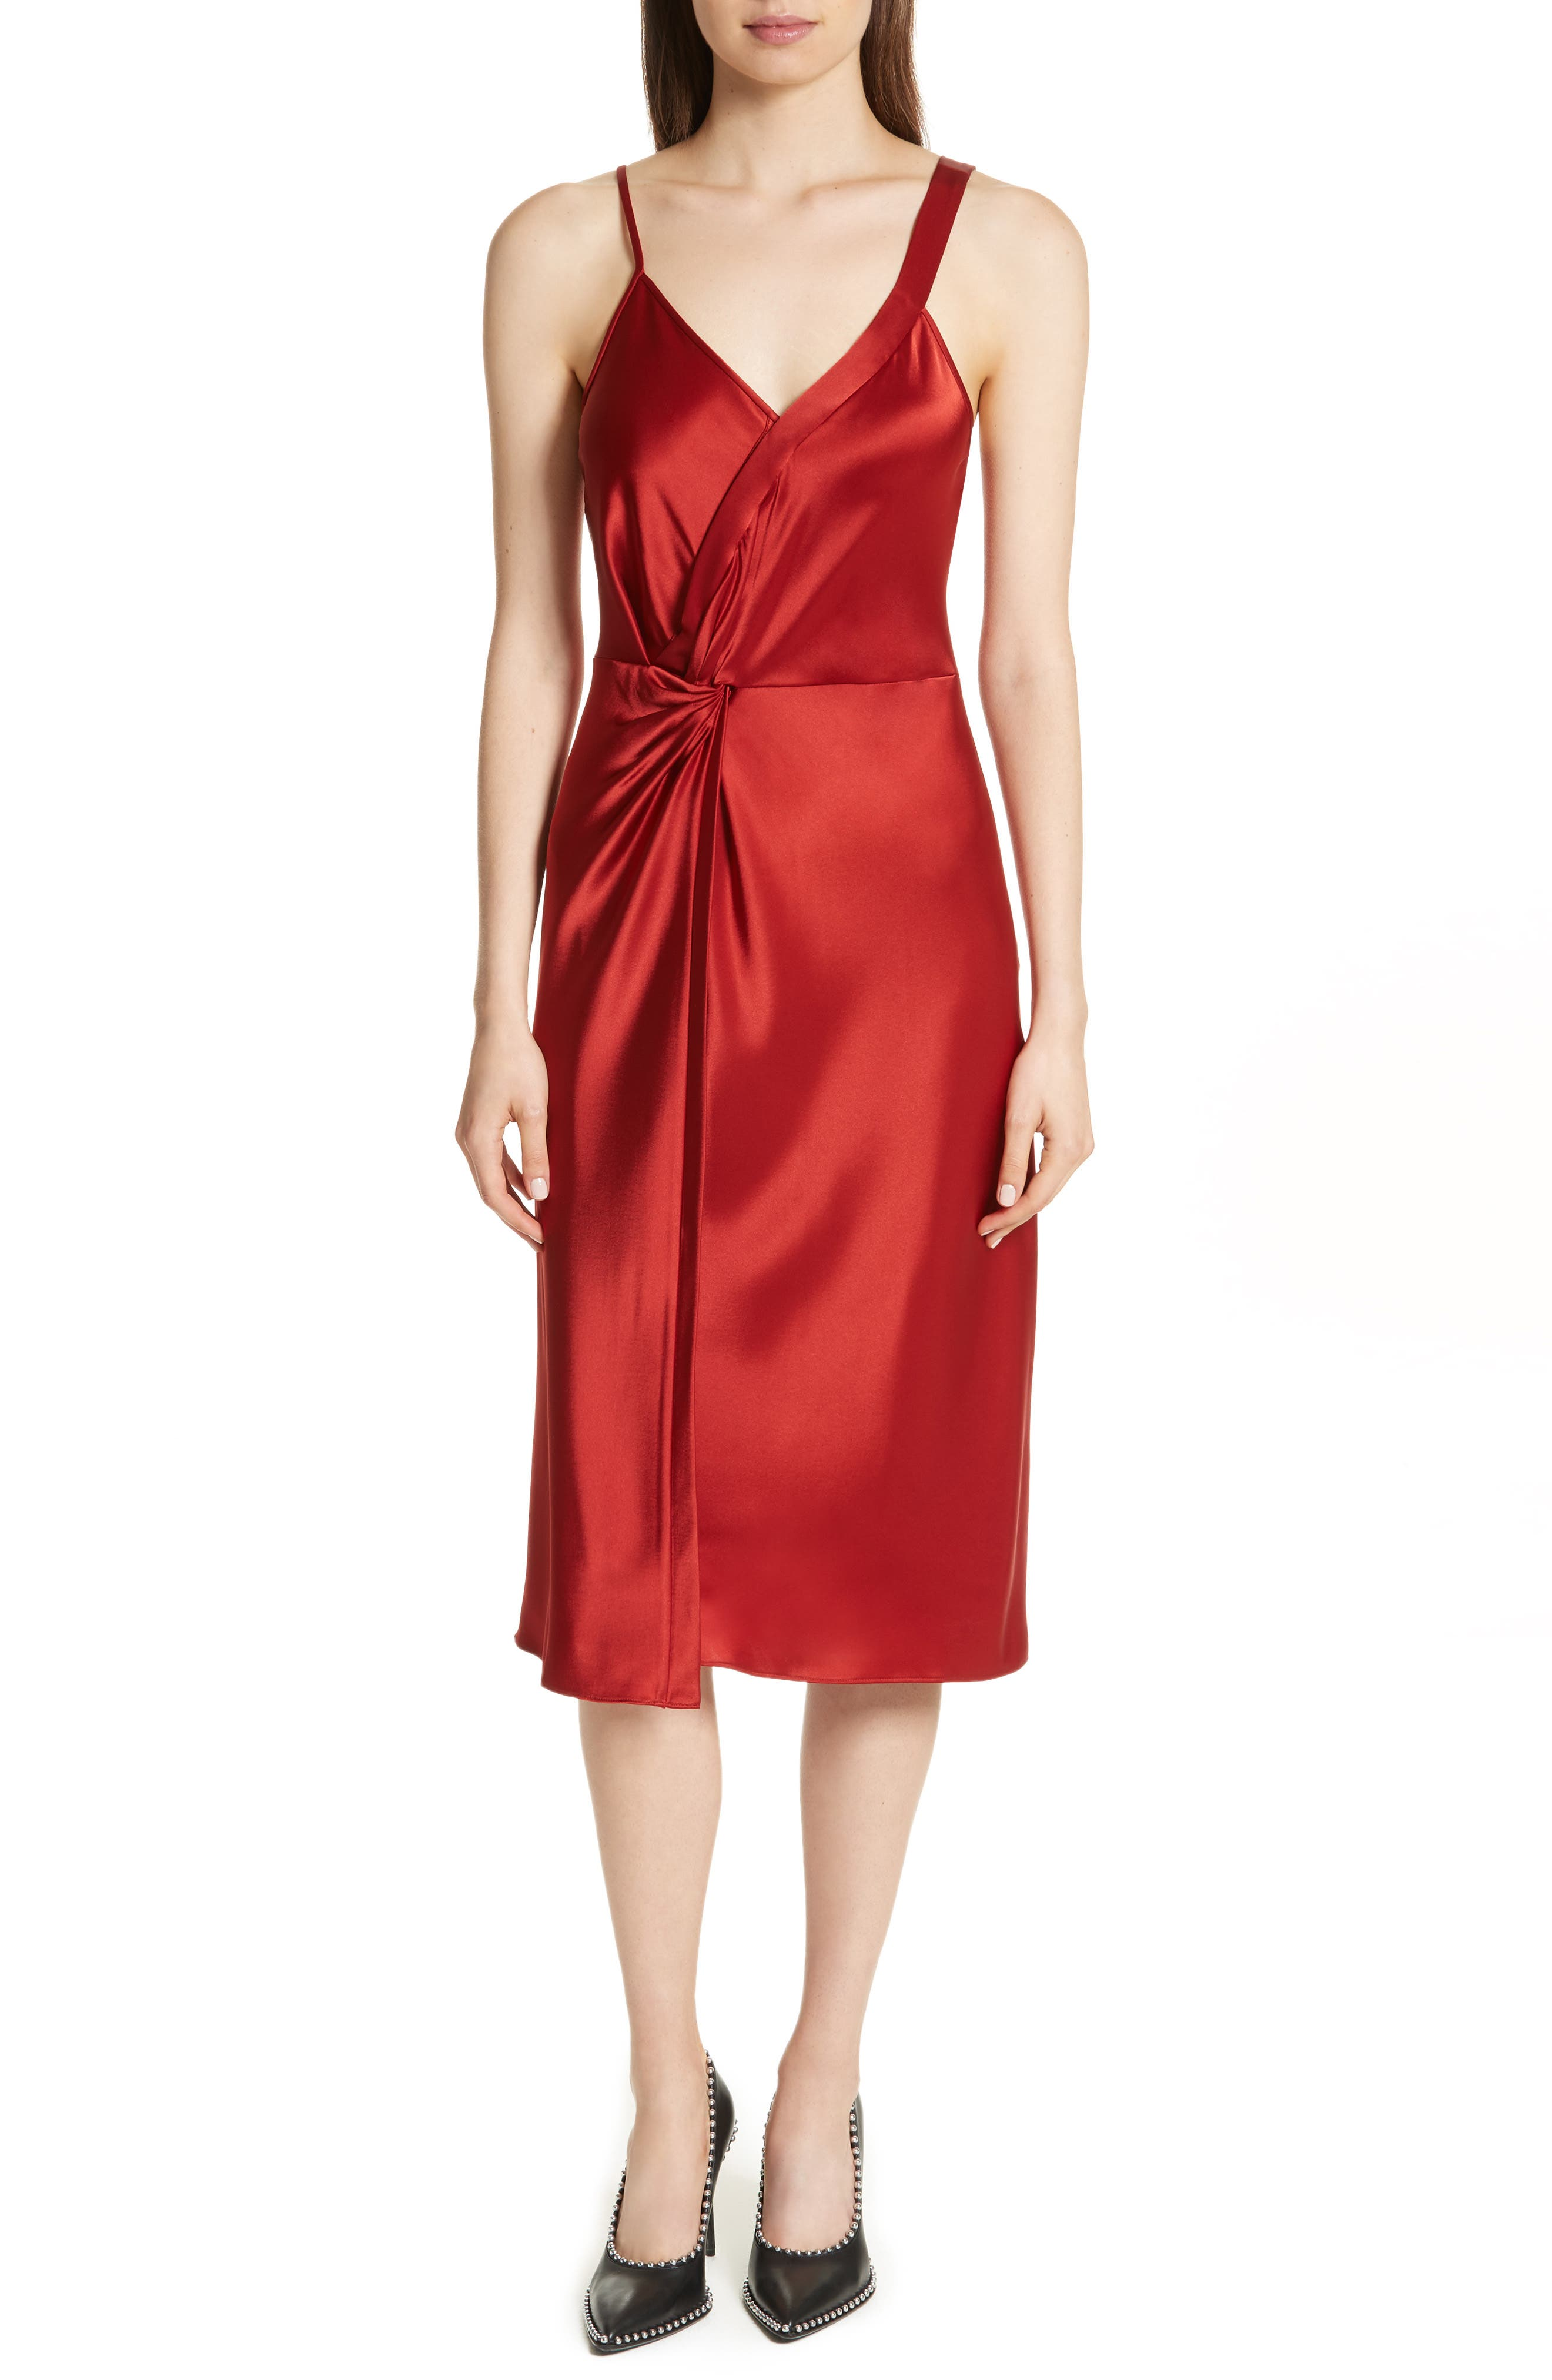 Alternate Image 1 Selected - T by Alexander Wang Draped Satin Dress